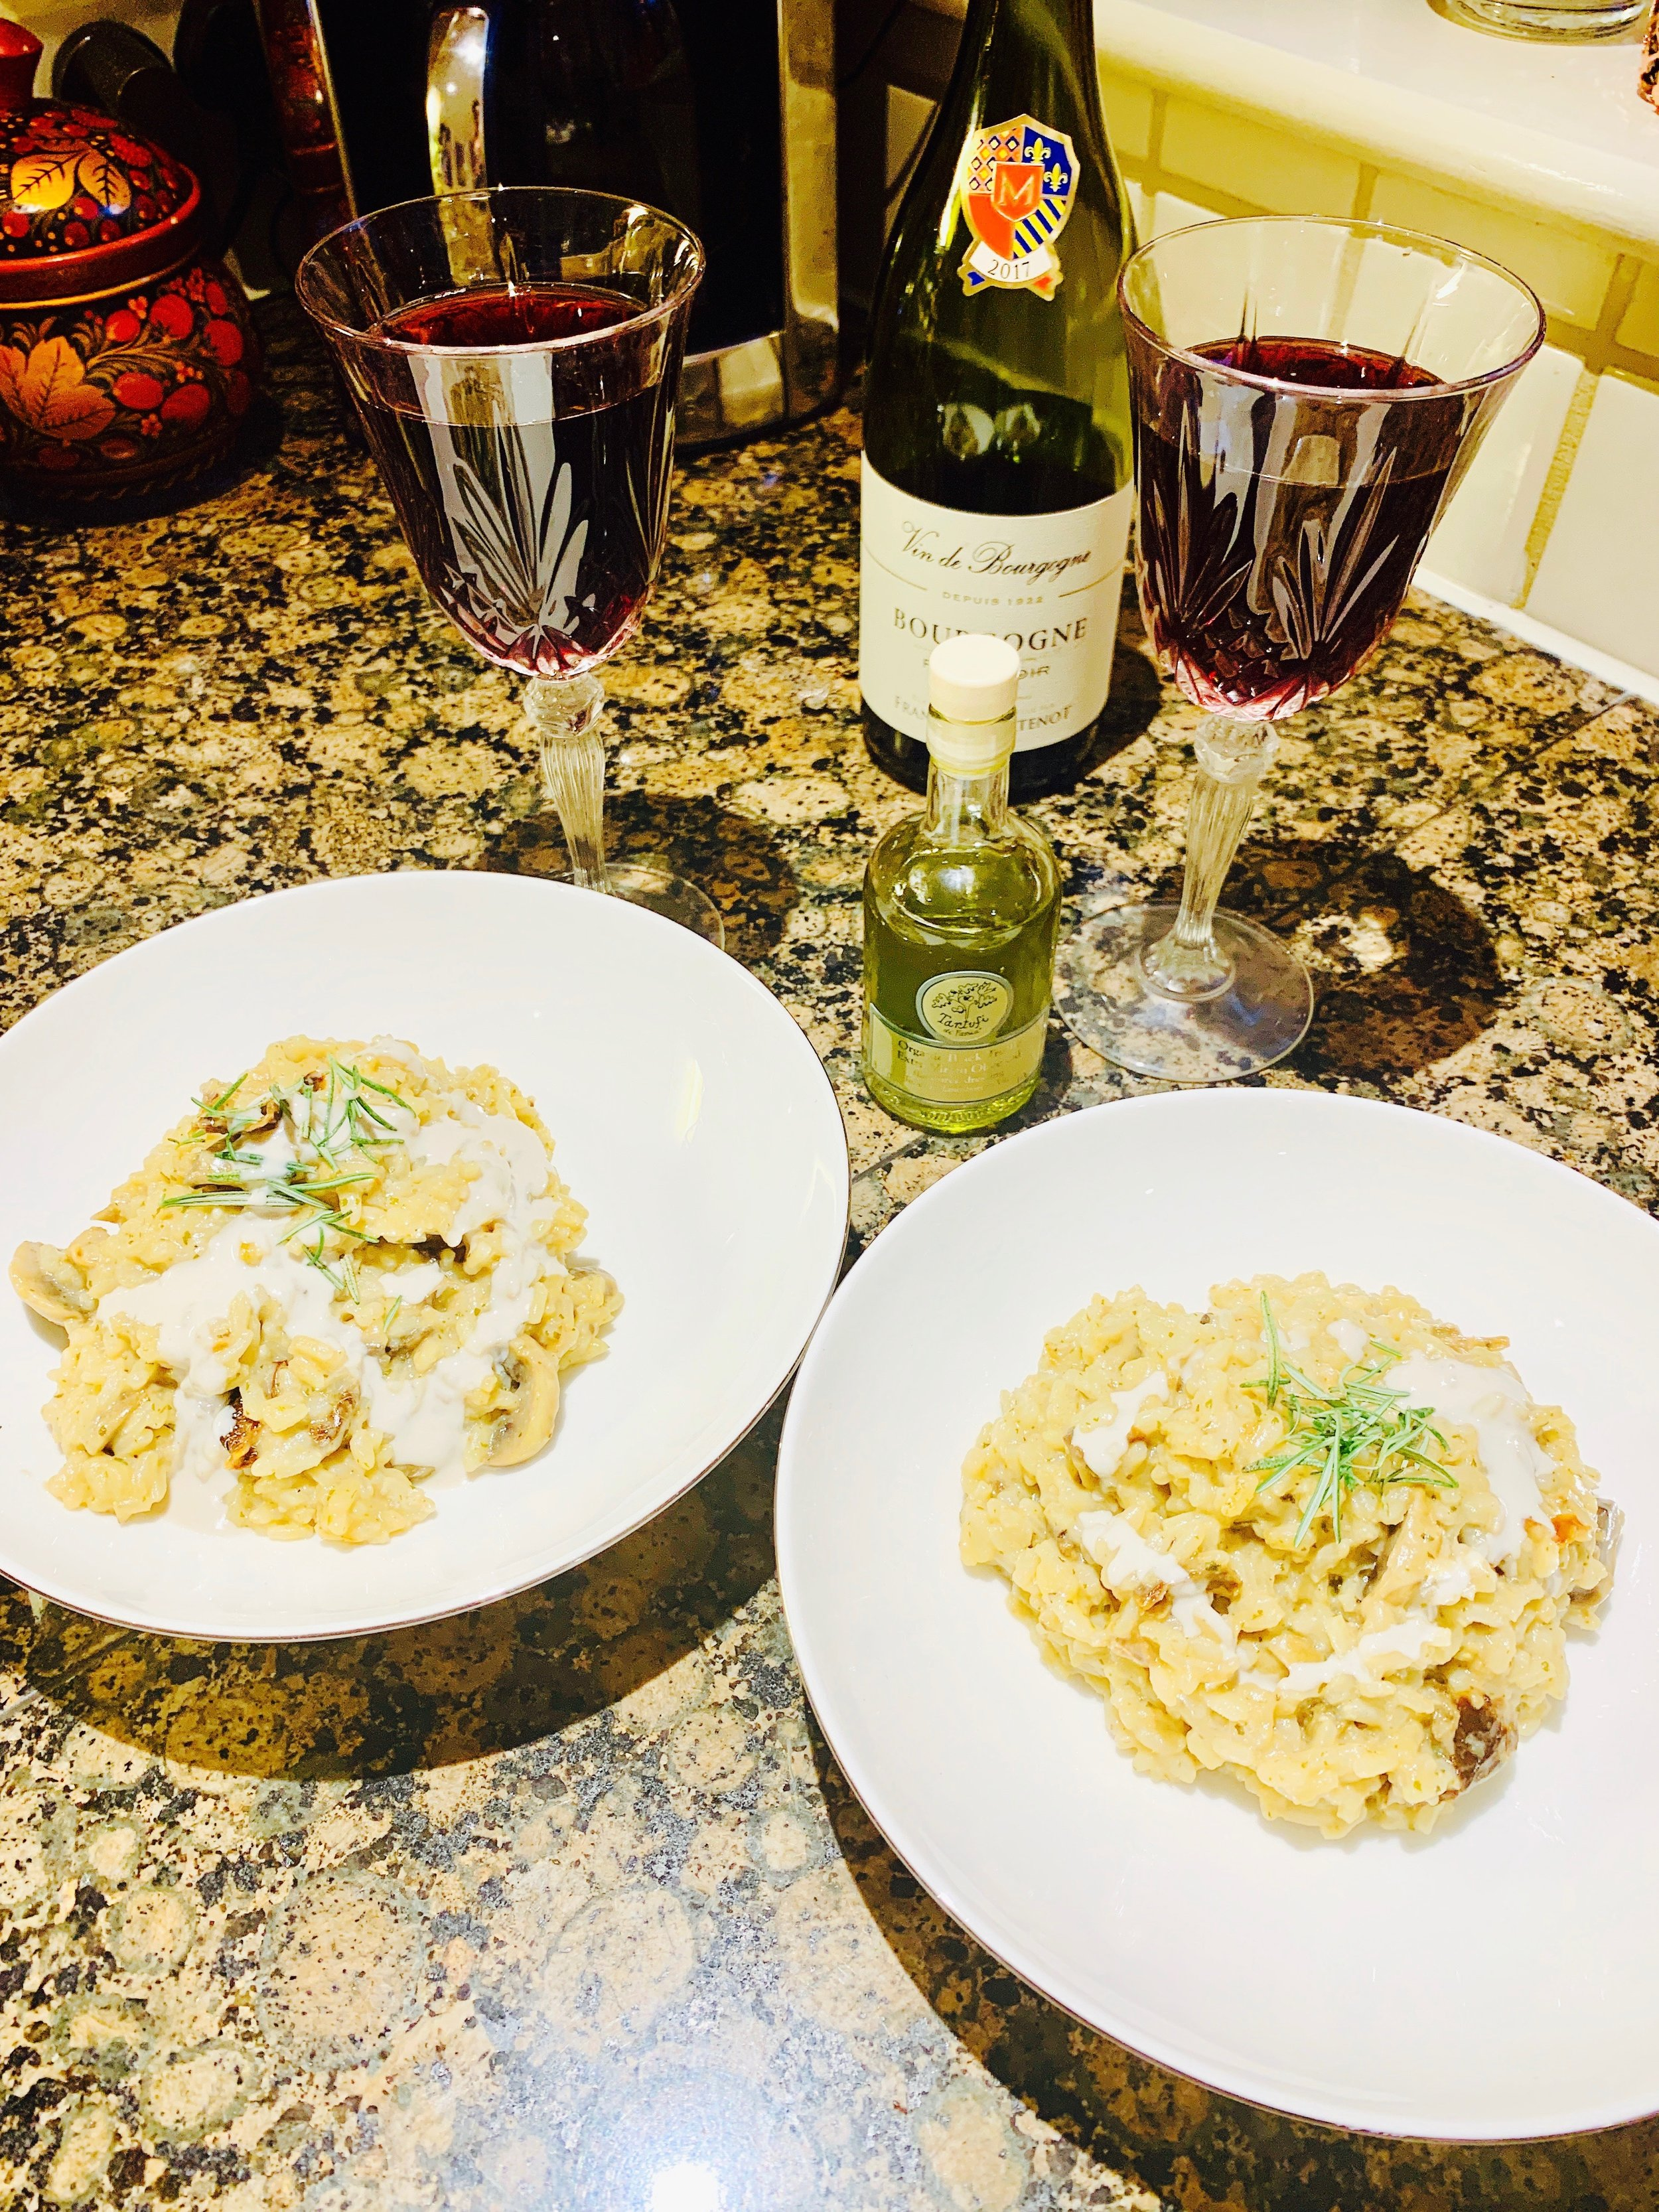 My Black Truffle Risotto was made with Organico Porchini Ristto blend (Ocado, Sainsburys and Whole Foods, and once boiled I added the Cashew Cheese, Truffle and topped with almond cream and some fresh thyme from our garden.   Total Prep time: 15 minutes